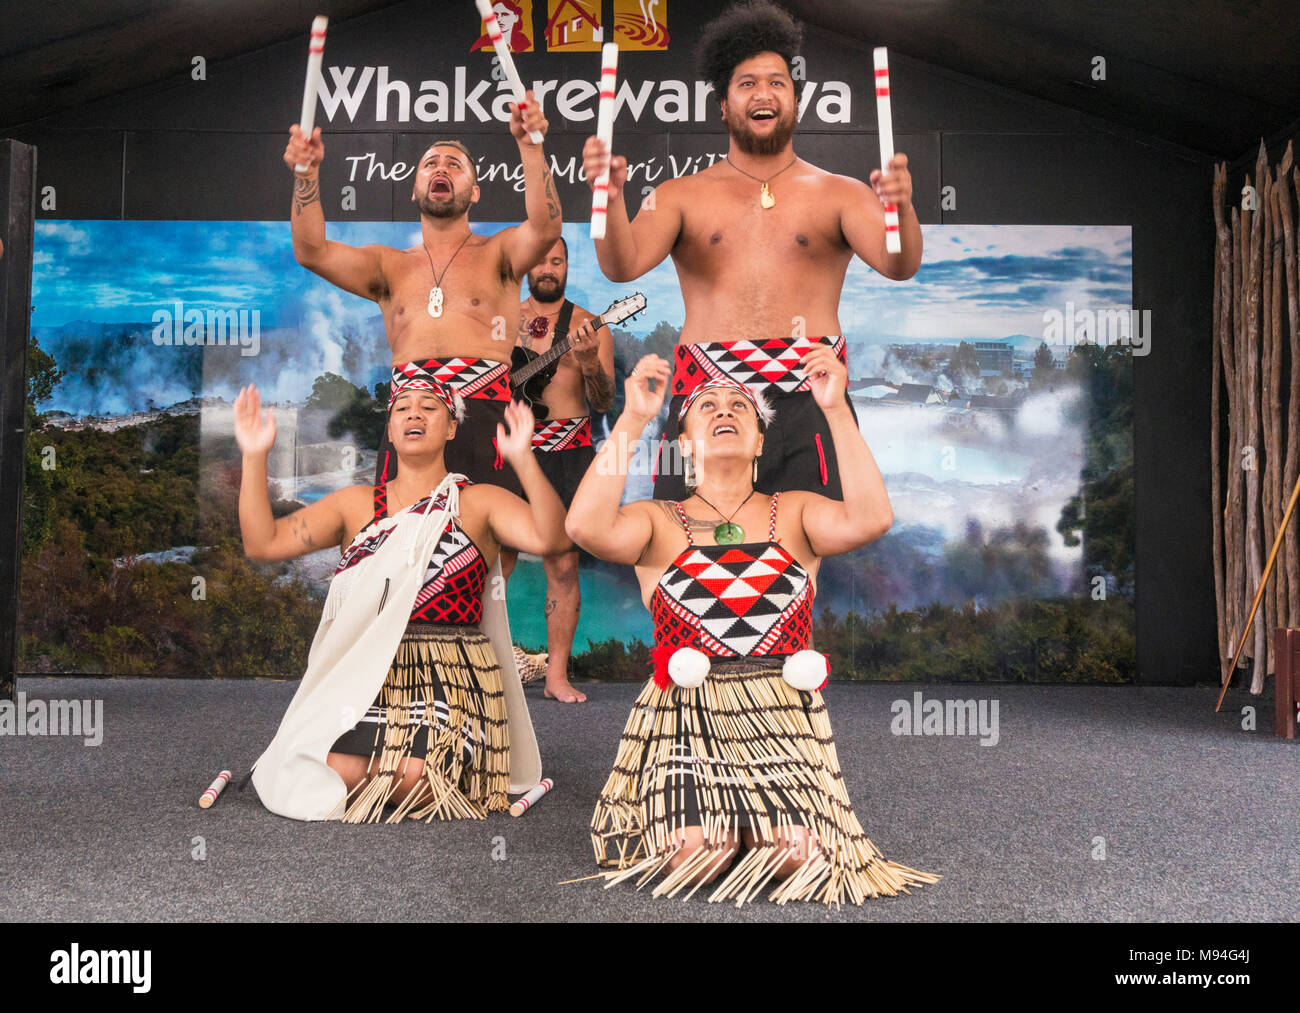 new zealand rotorua new zealand whakarewarewa rotorua maori cultural entertainment show with four maori dancers nz north island new zealand oceania - Stock Image